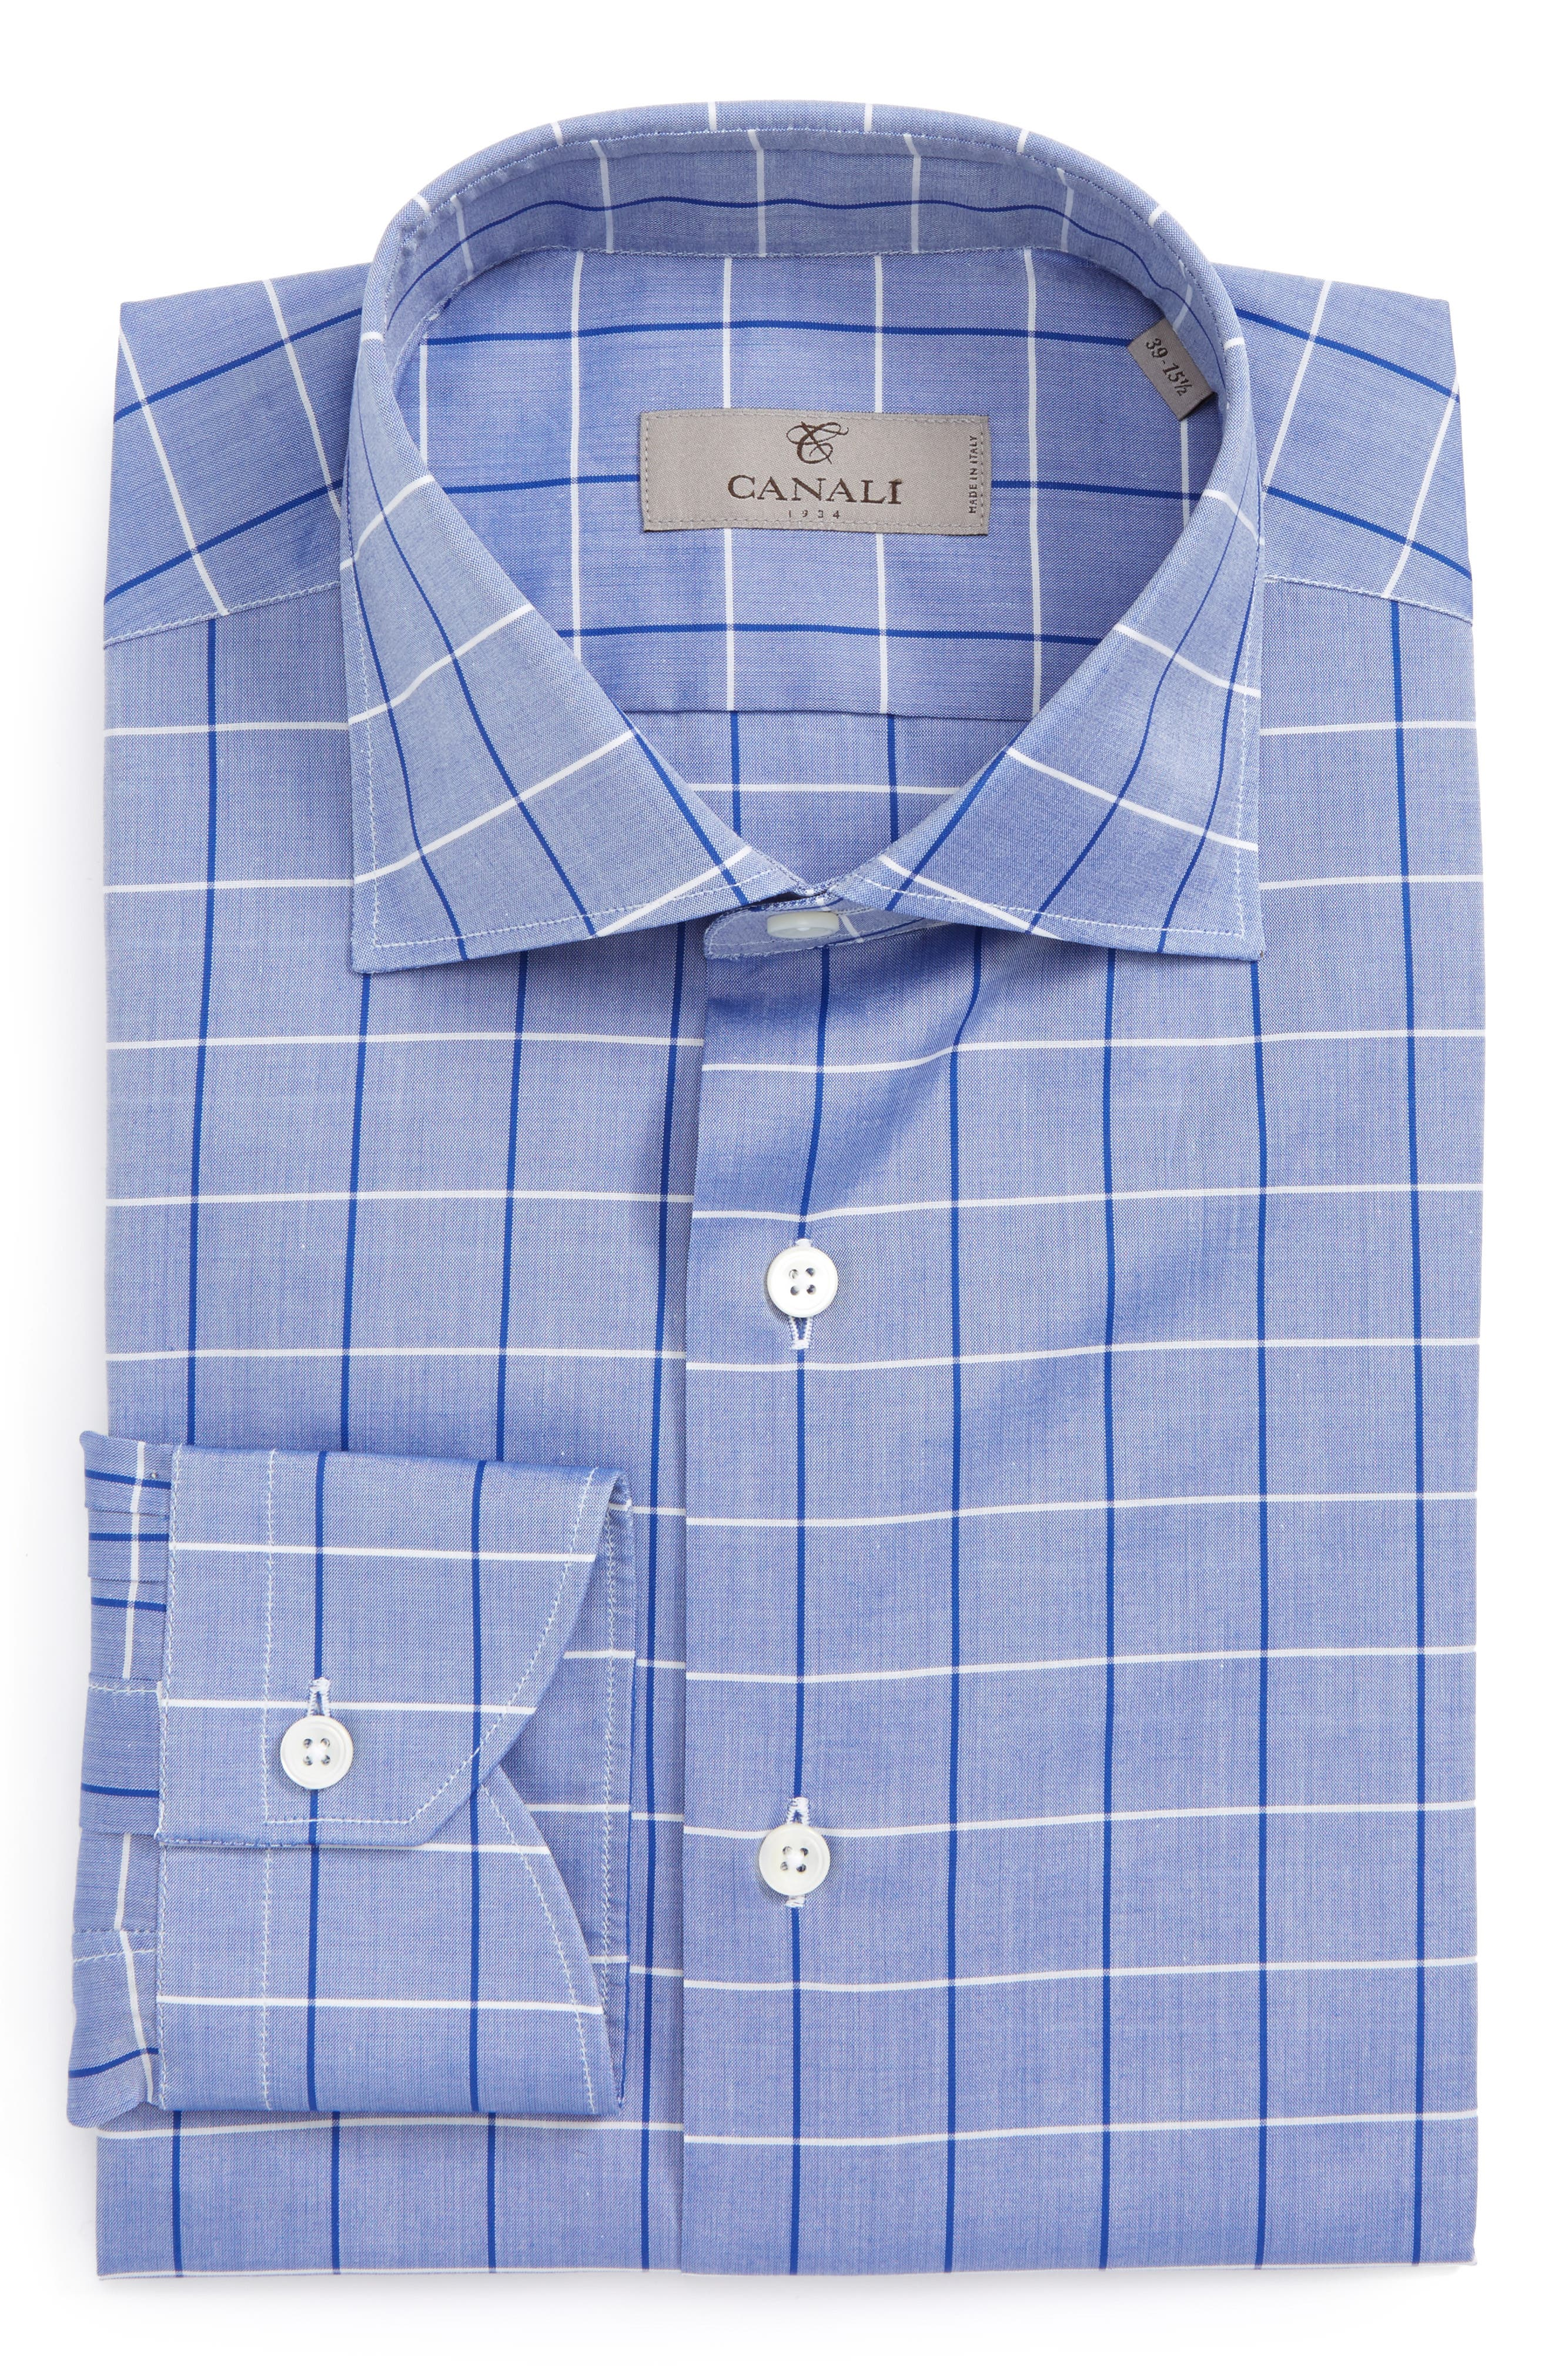 Canali Regular Fit Windowpane Dress Shirt